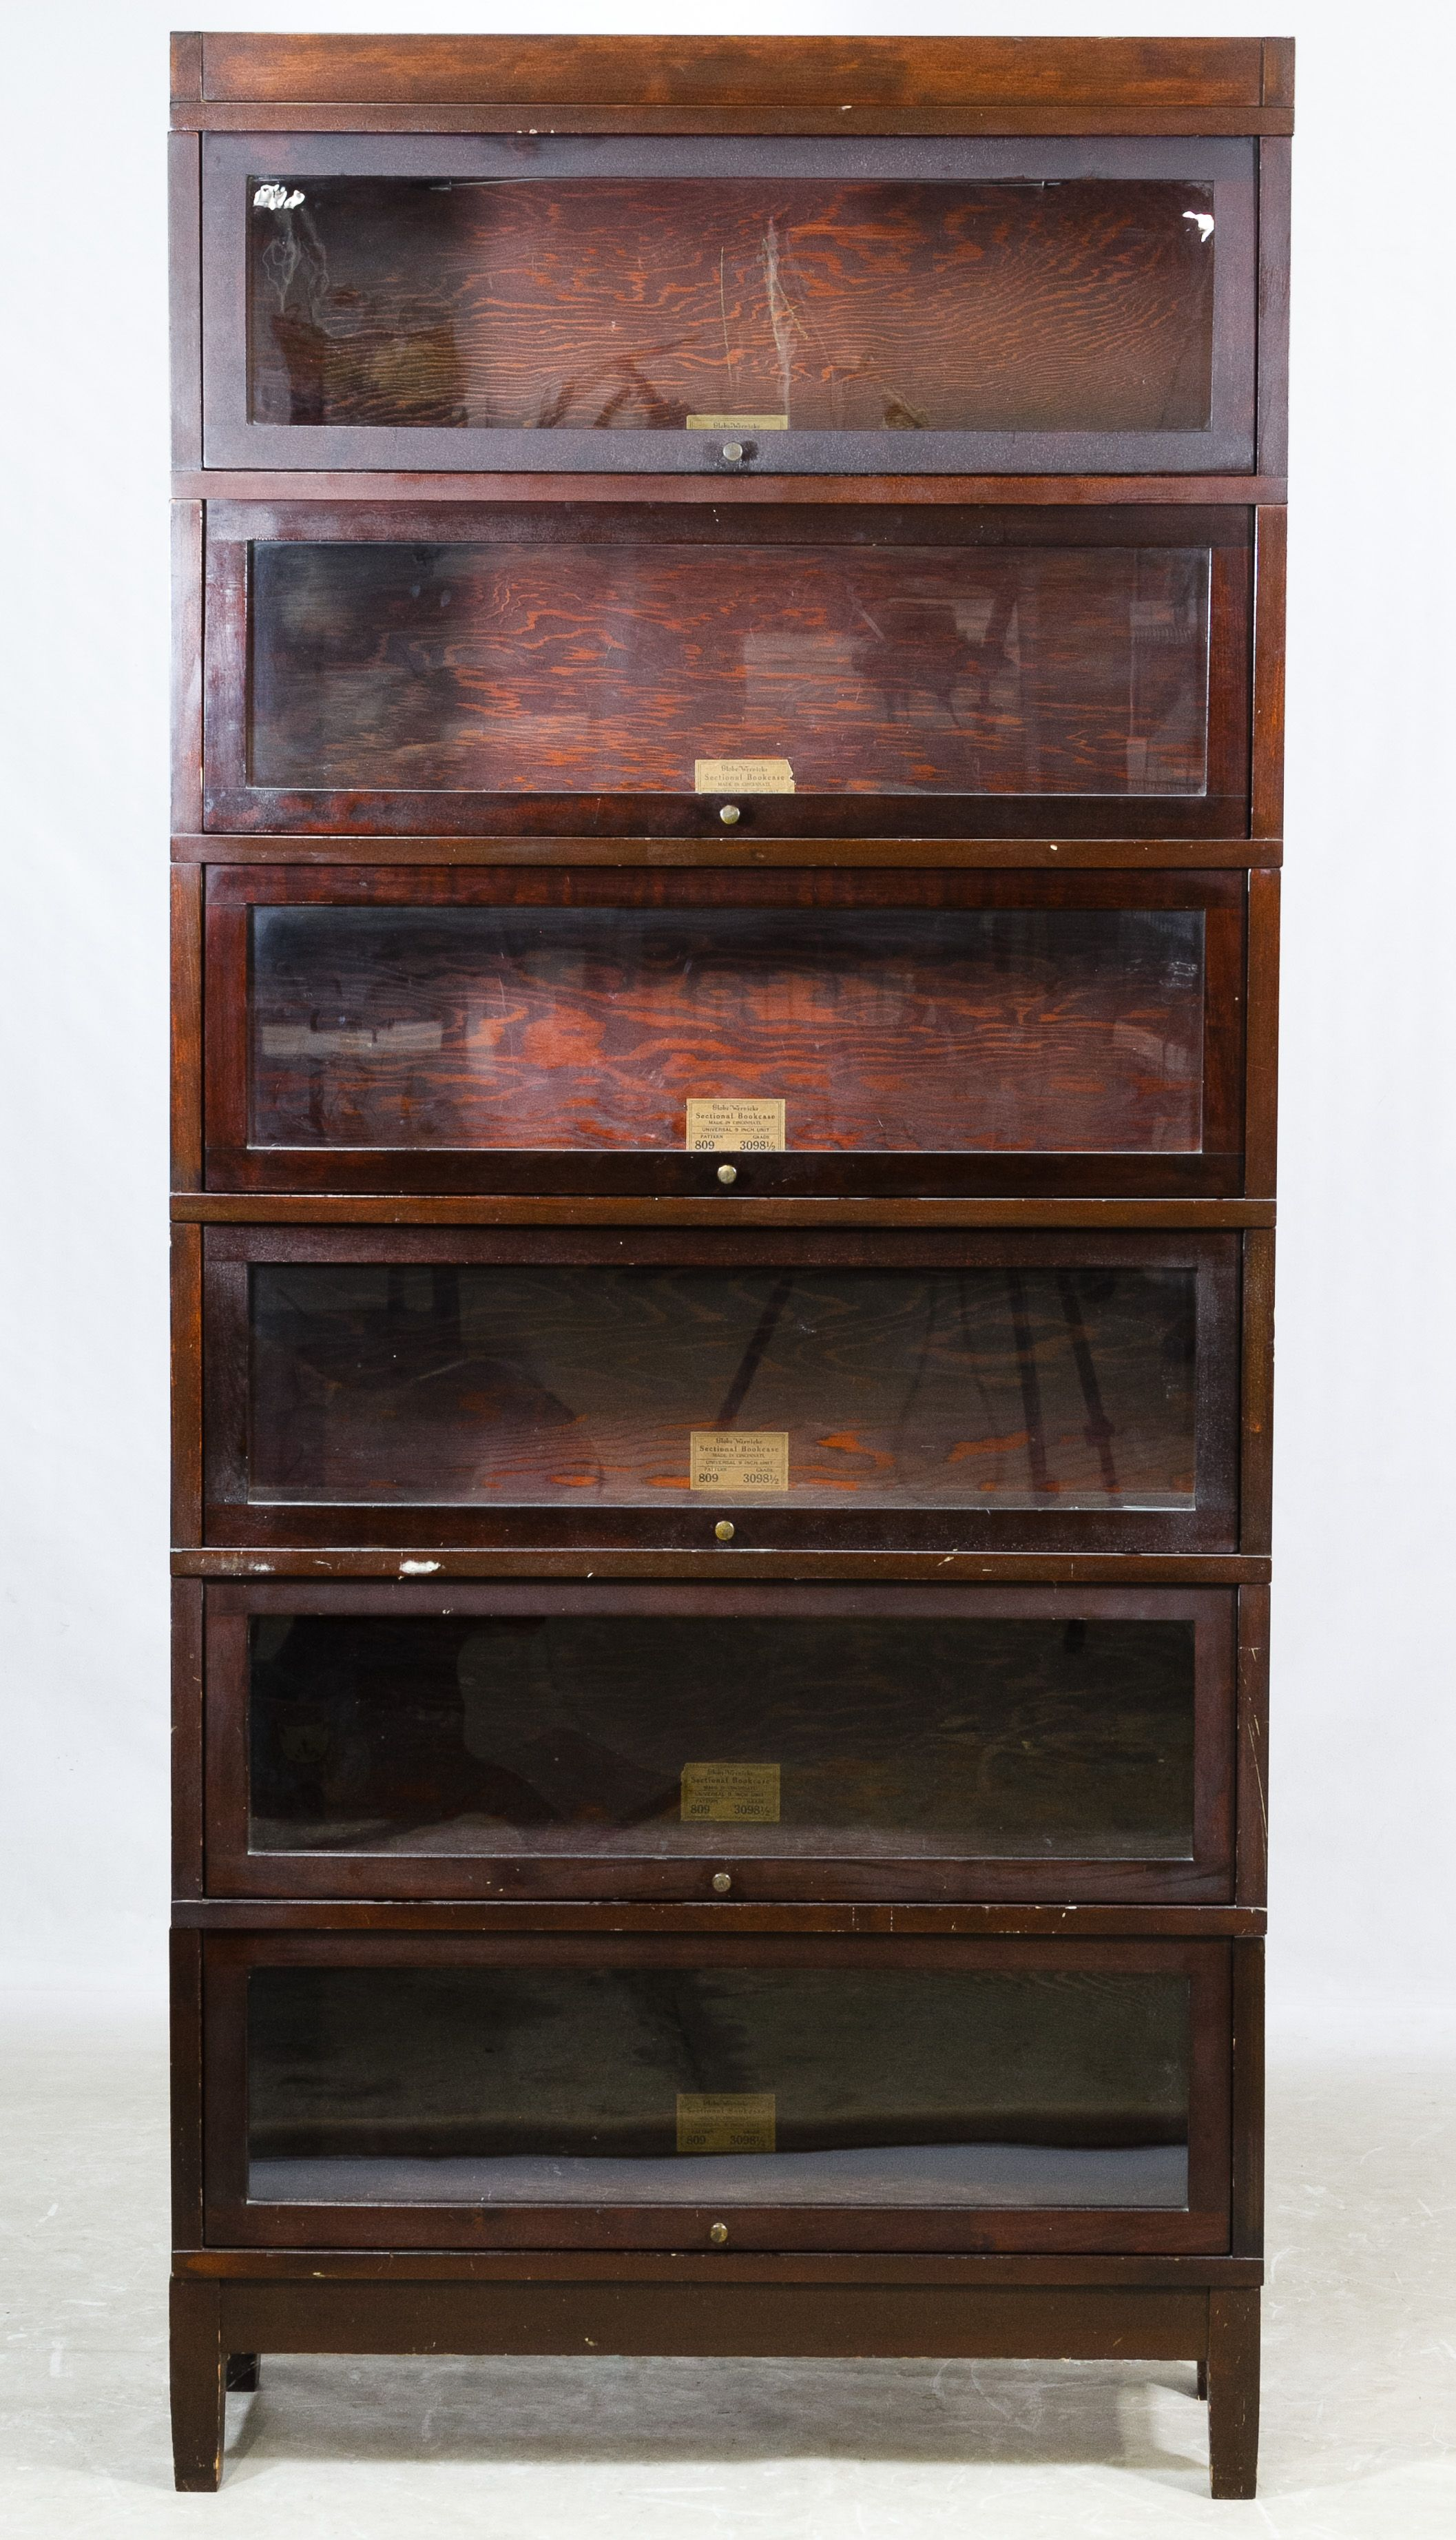 Lot 57 Mahogany Barrister Bookcase By Globe Wernicke Six Section With Base And Cap